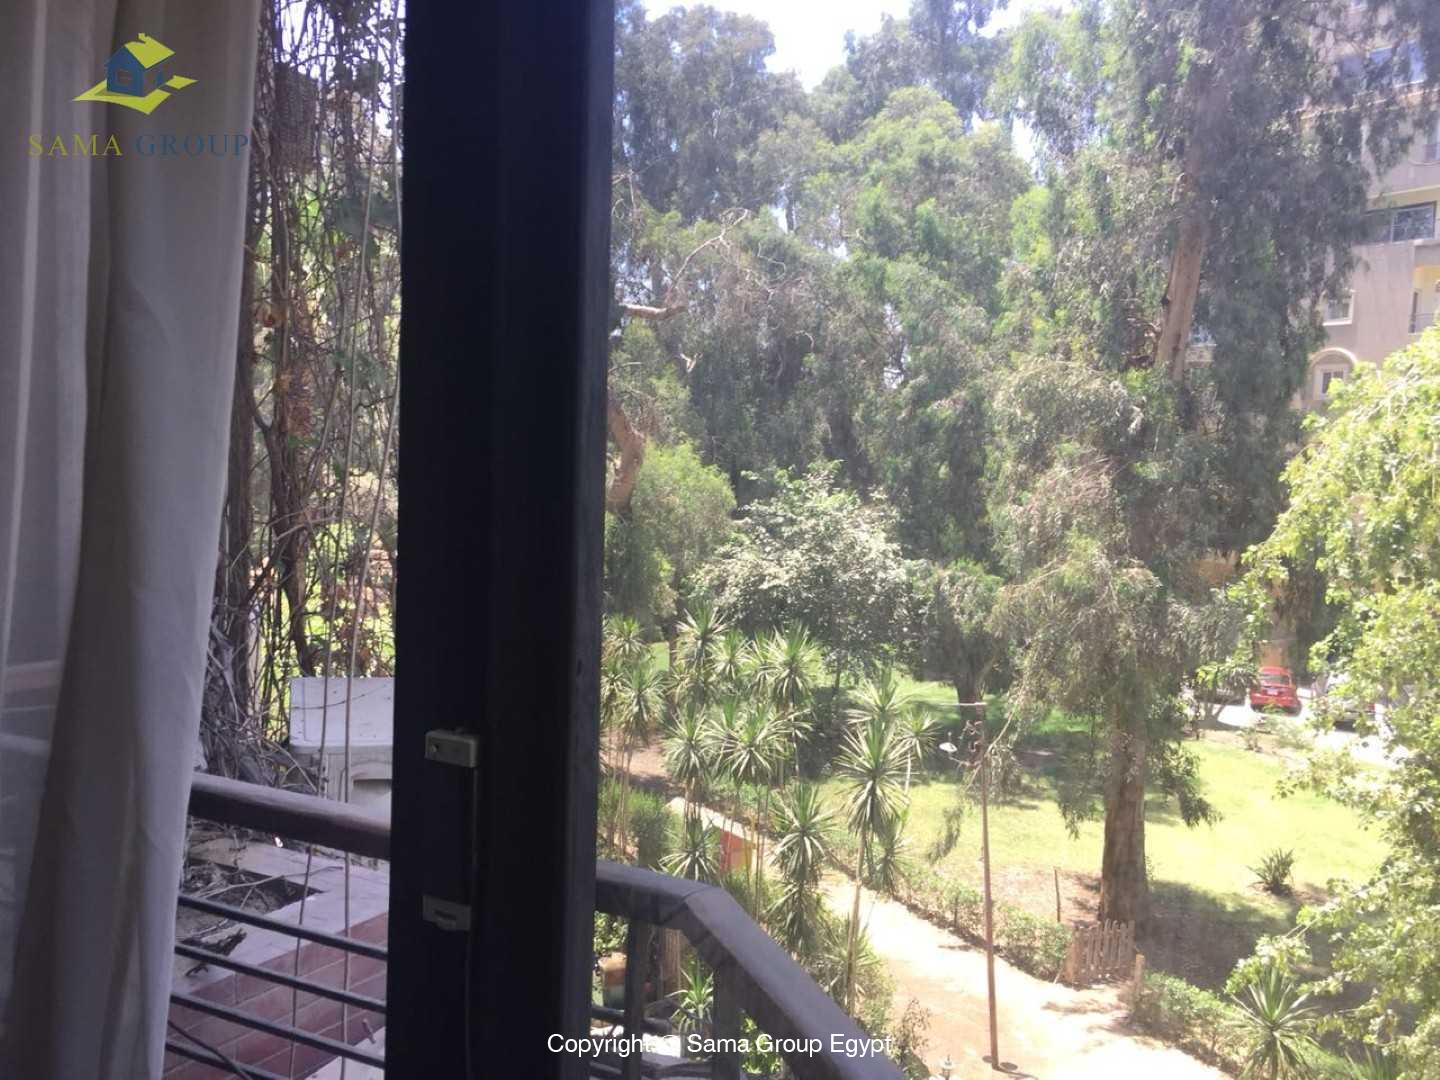 Furnished Apartment For Rent In Maadi Sarayat,Furnished,Apartment NO #12